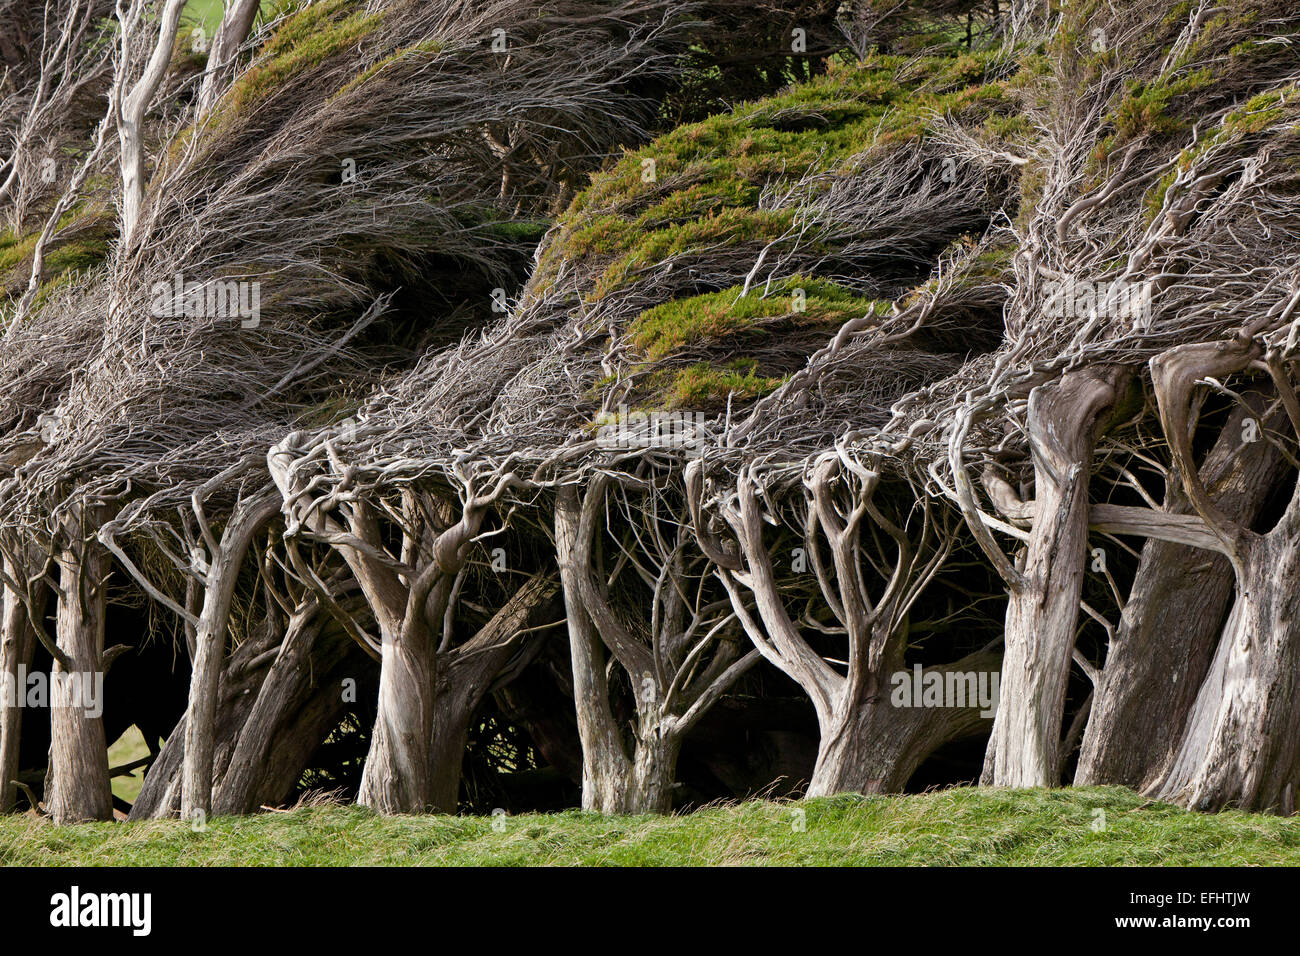 Wind sculpted trees, macrocarpa trees, Slope Point, Catlins, most southerly point of South Island, New Zealand - Stock Image